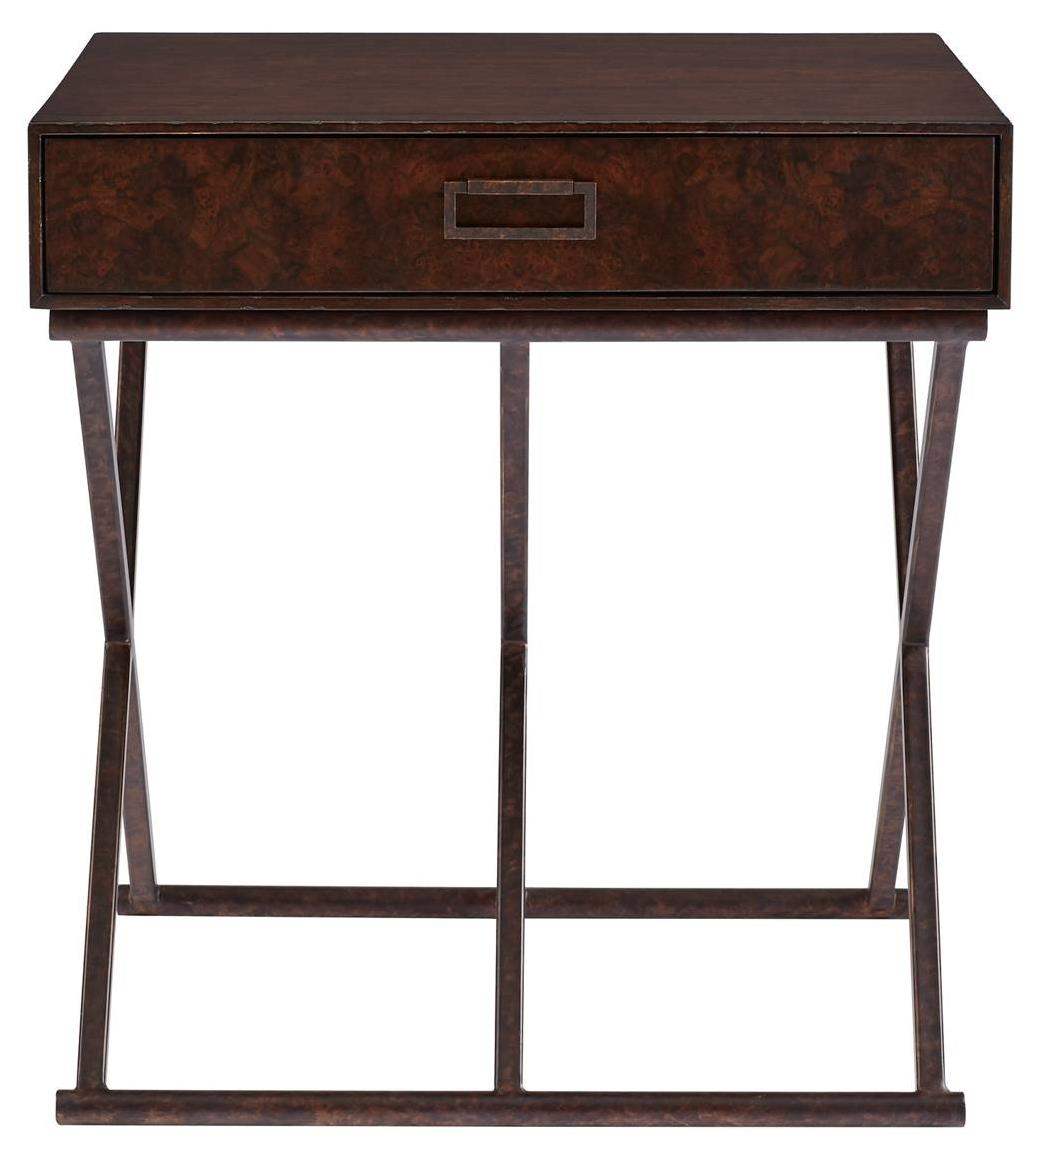 Stanley Furniture Villa Couture Rocco End Table - Item Number: 510-15-08